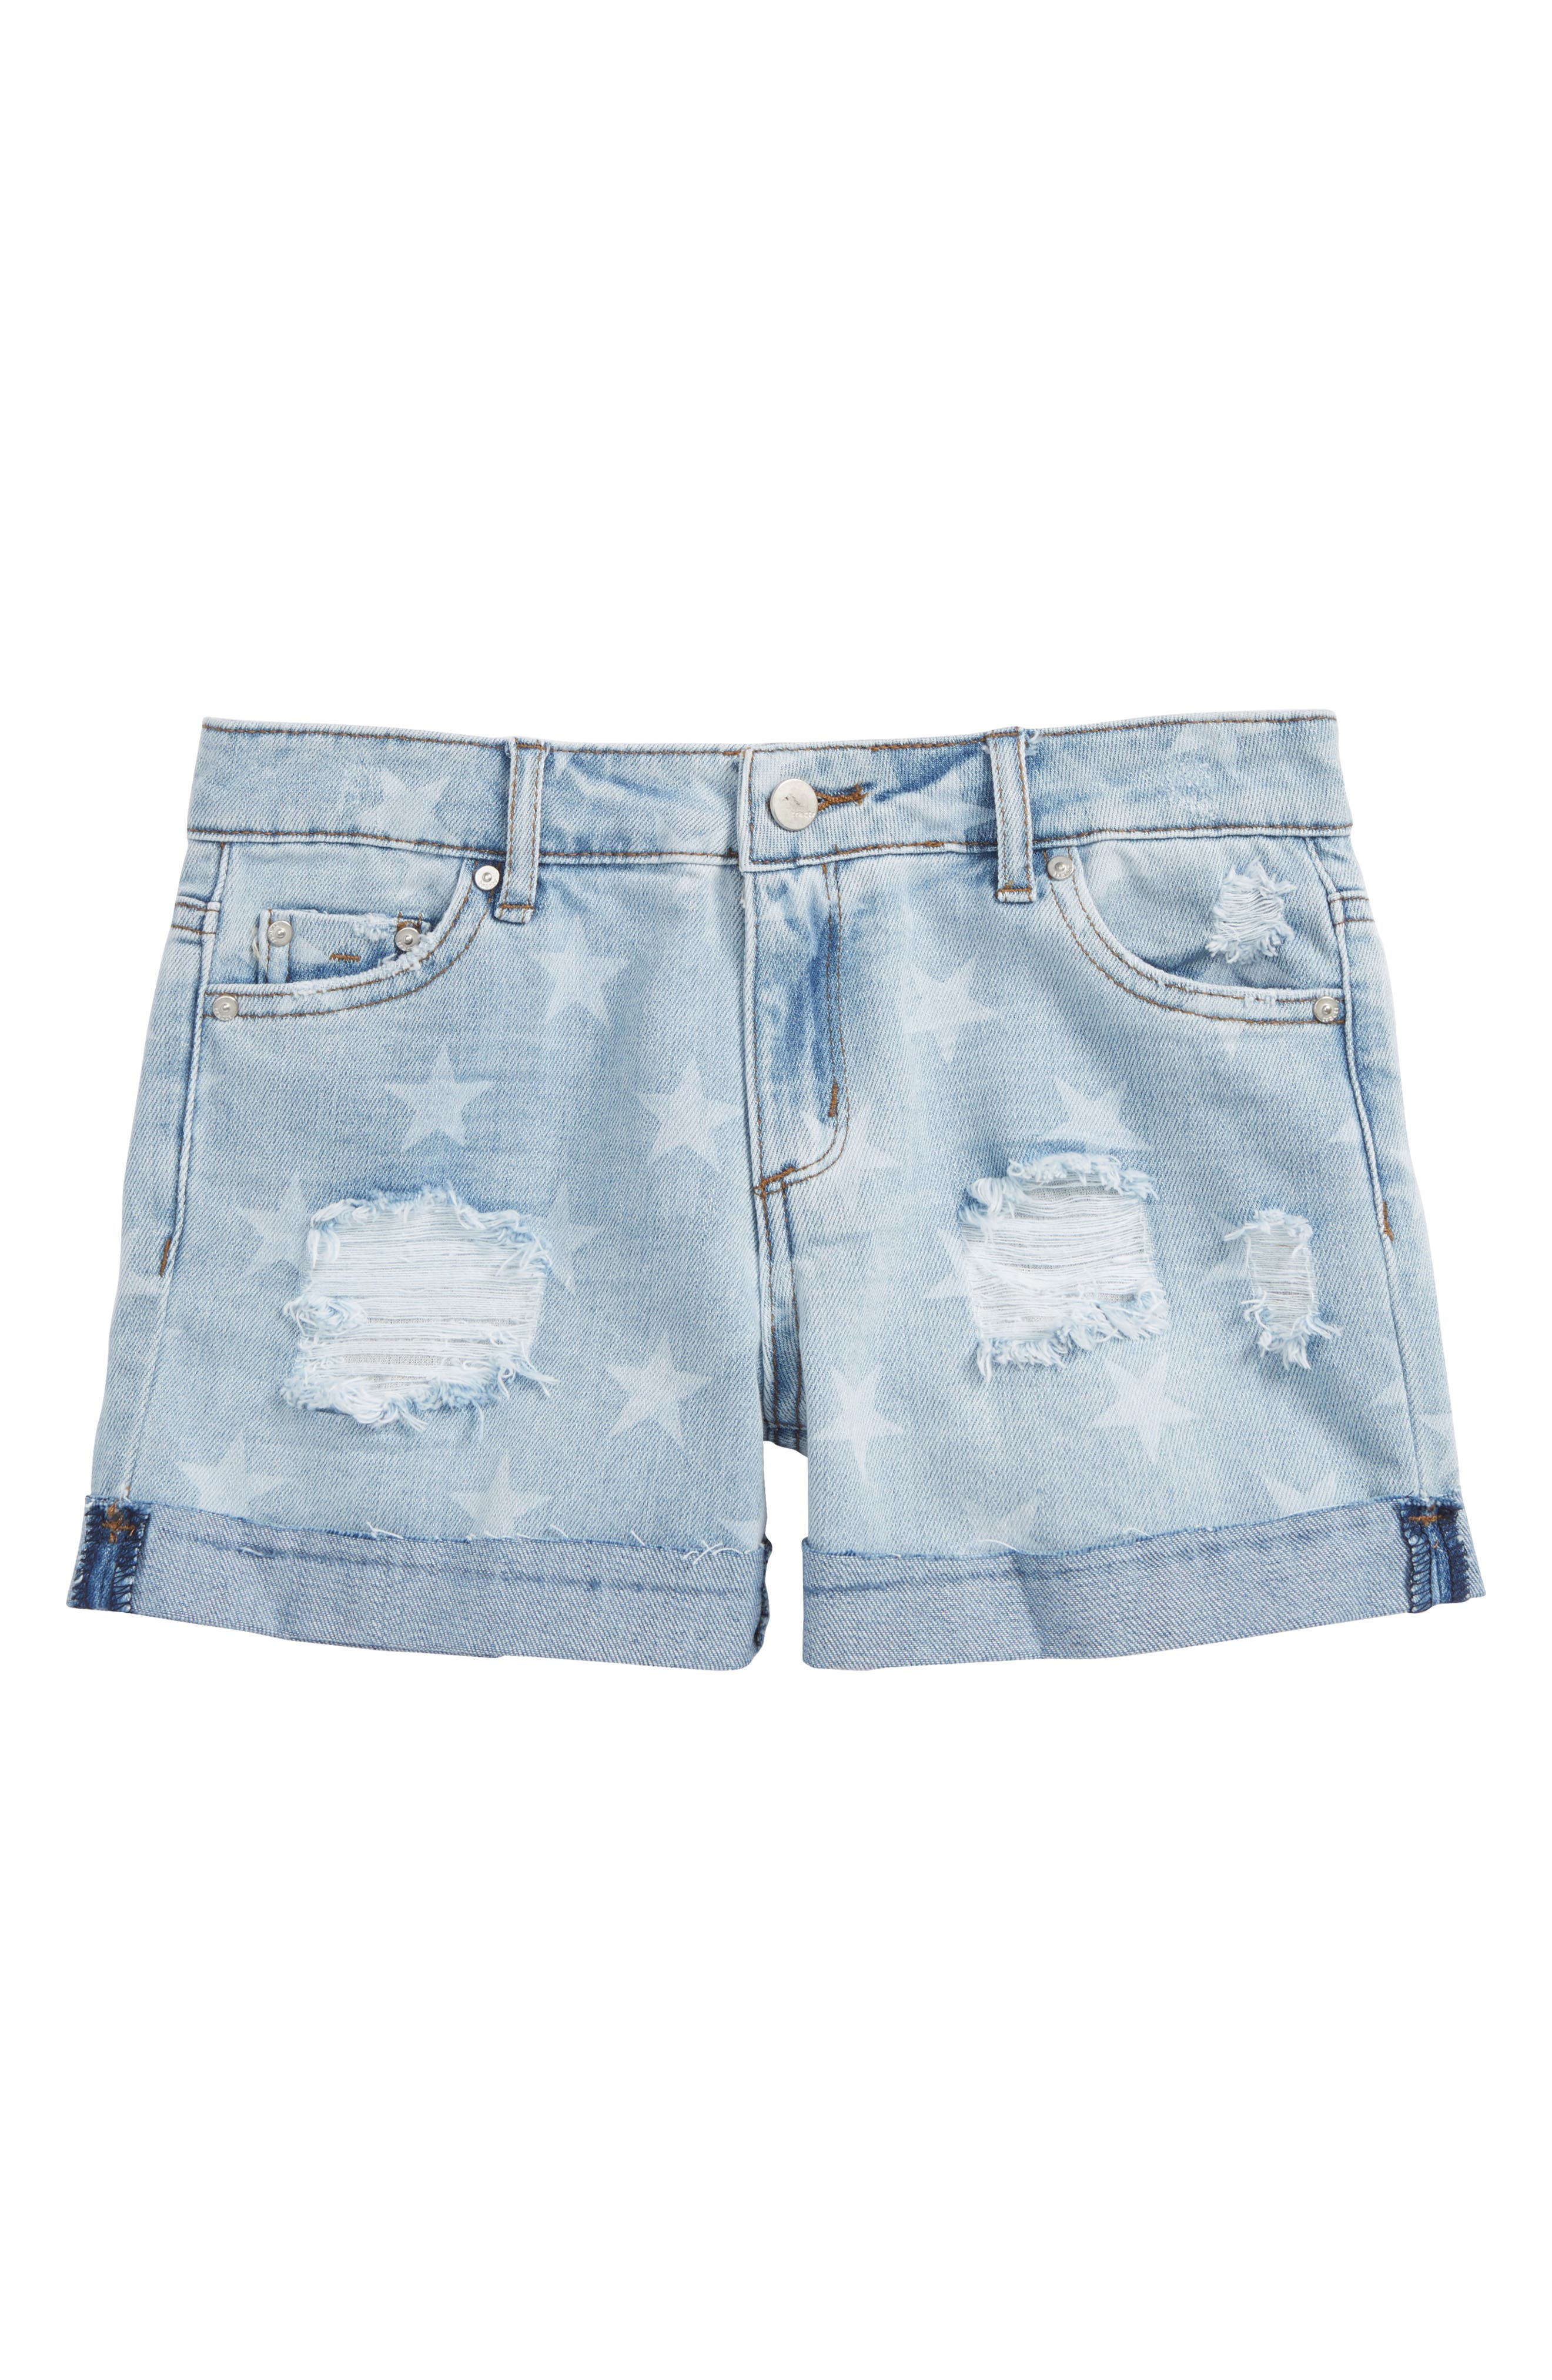 Star Roll Distressed Denim Shorts,                         Main,                         color, 461